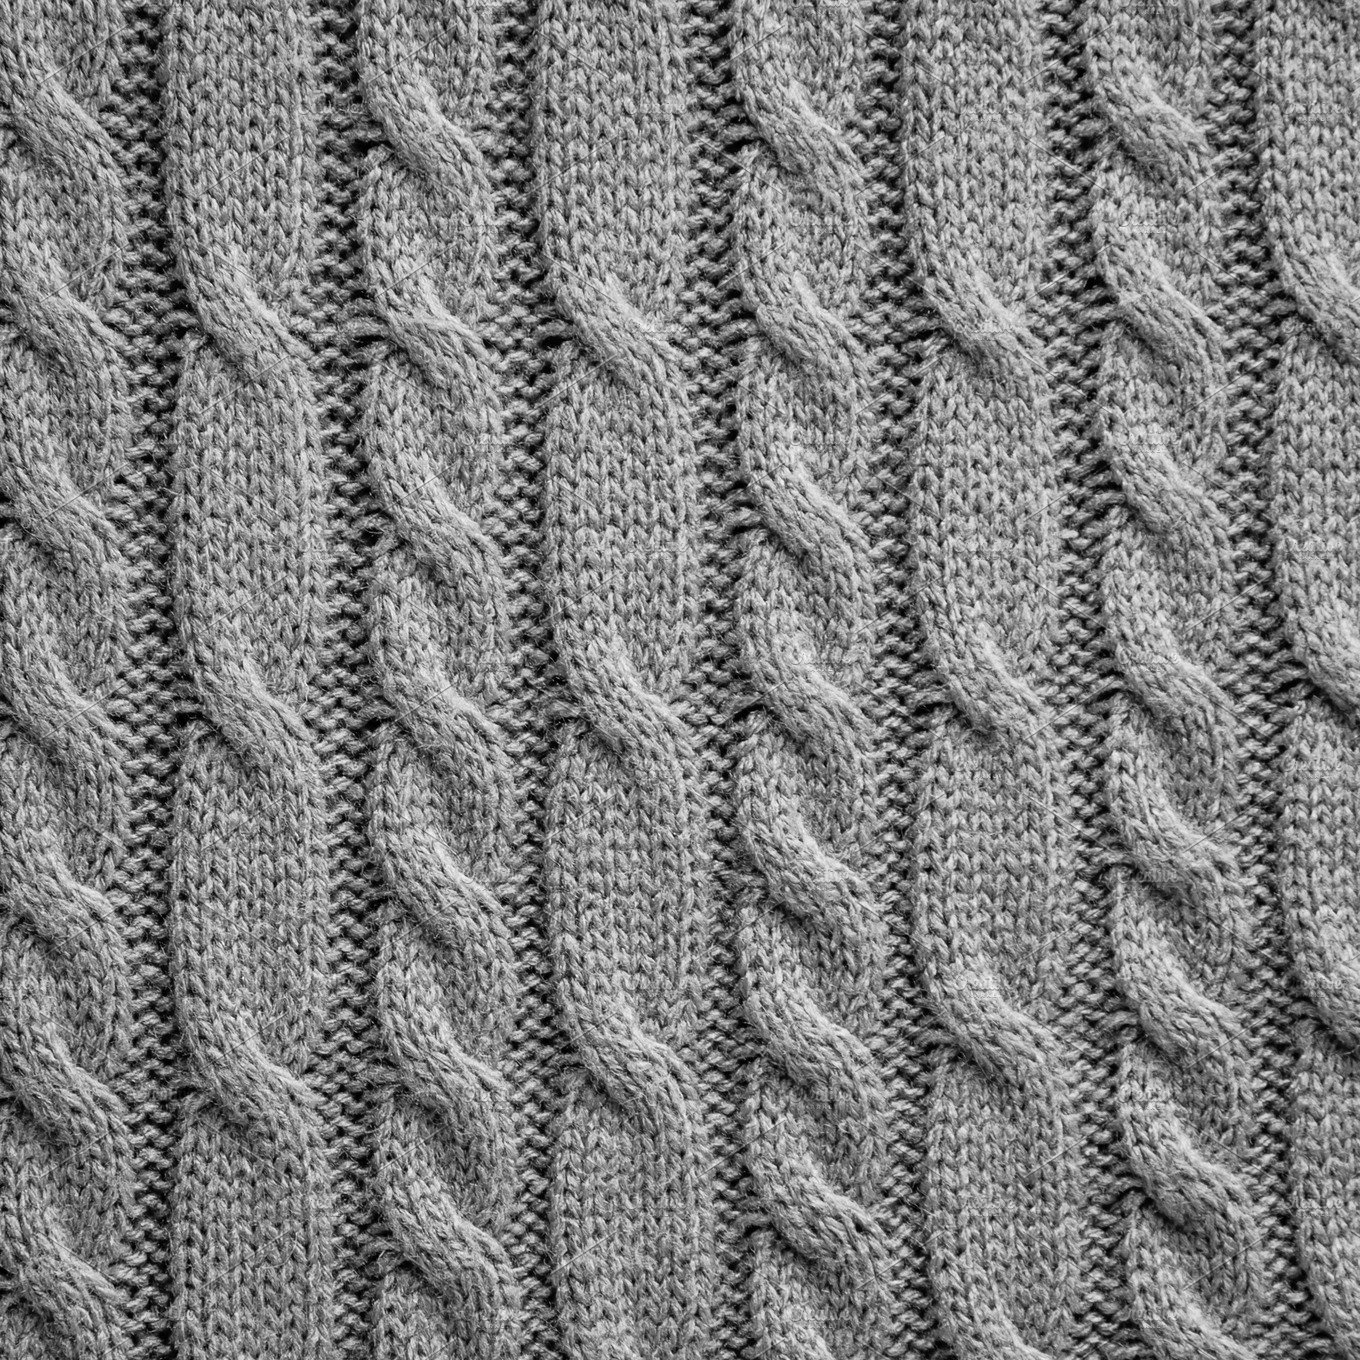 Grey knitting wool texture ~ Abstract Photos ~ Creative Market